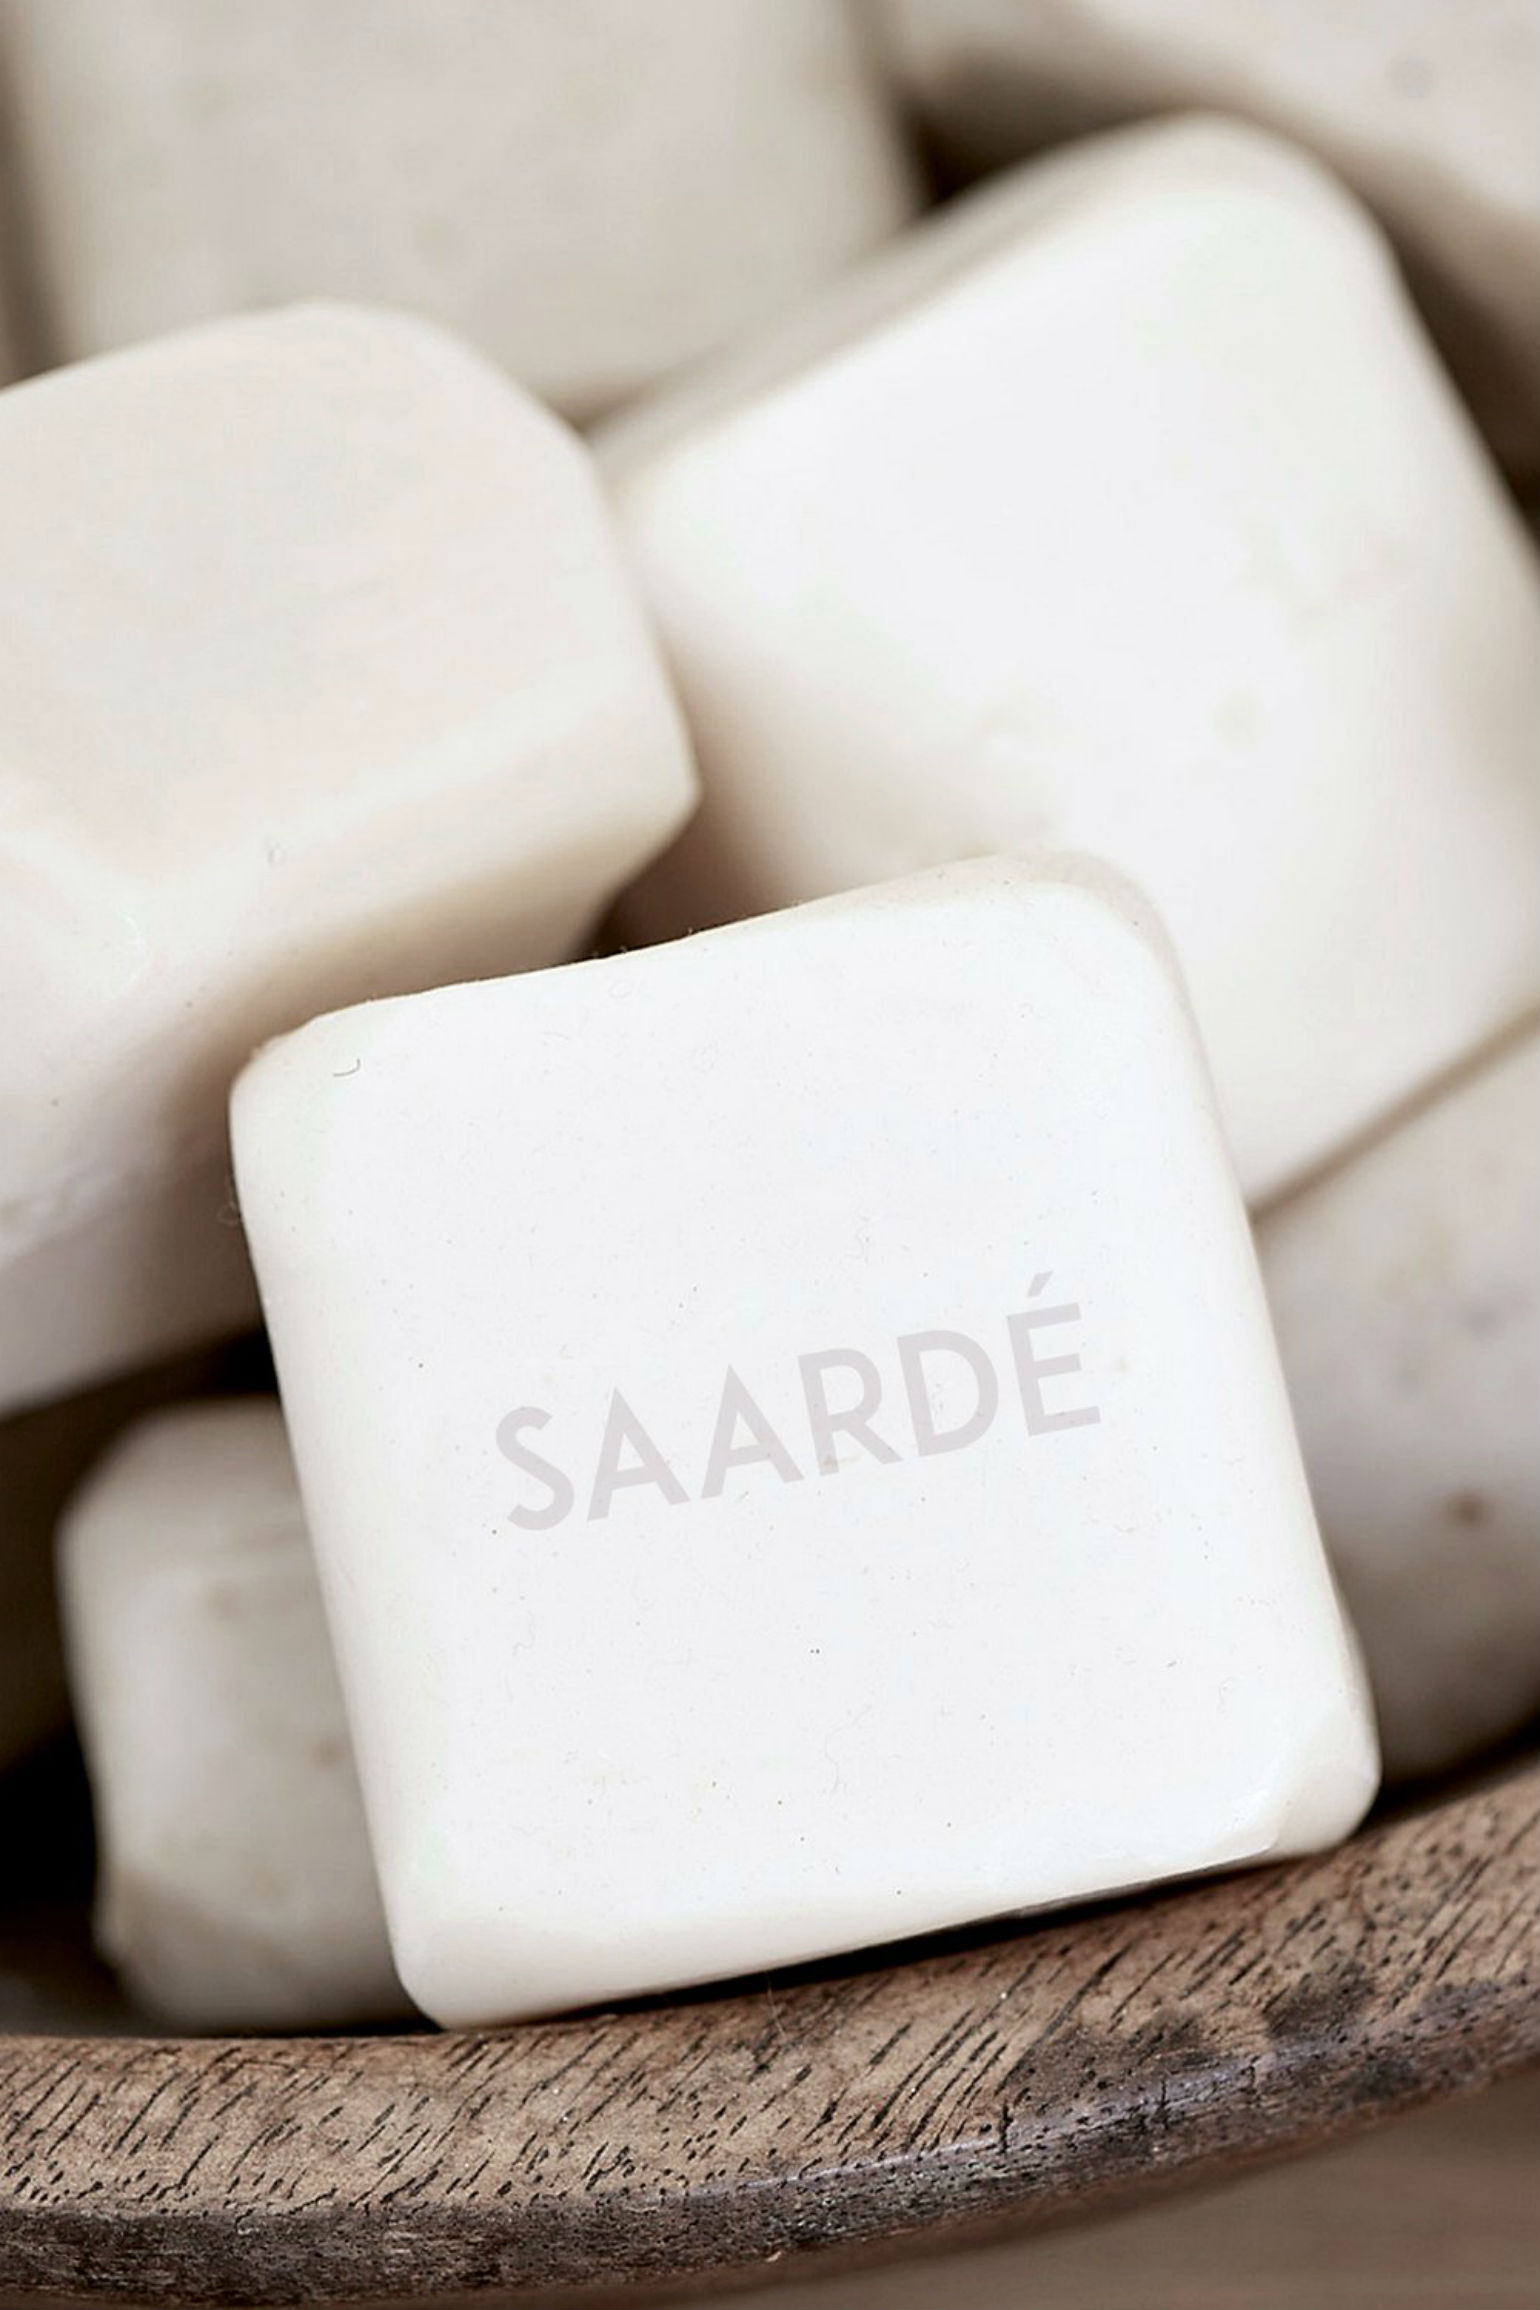 Saarde Olive Oil Stone Soap Narcissus